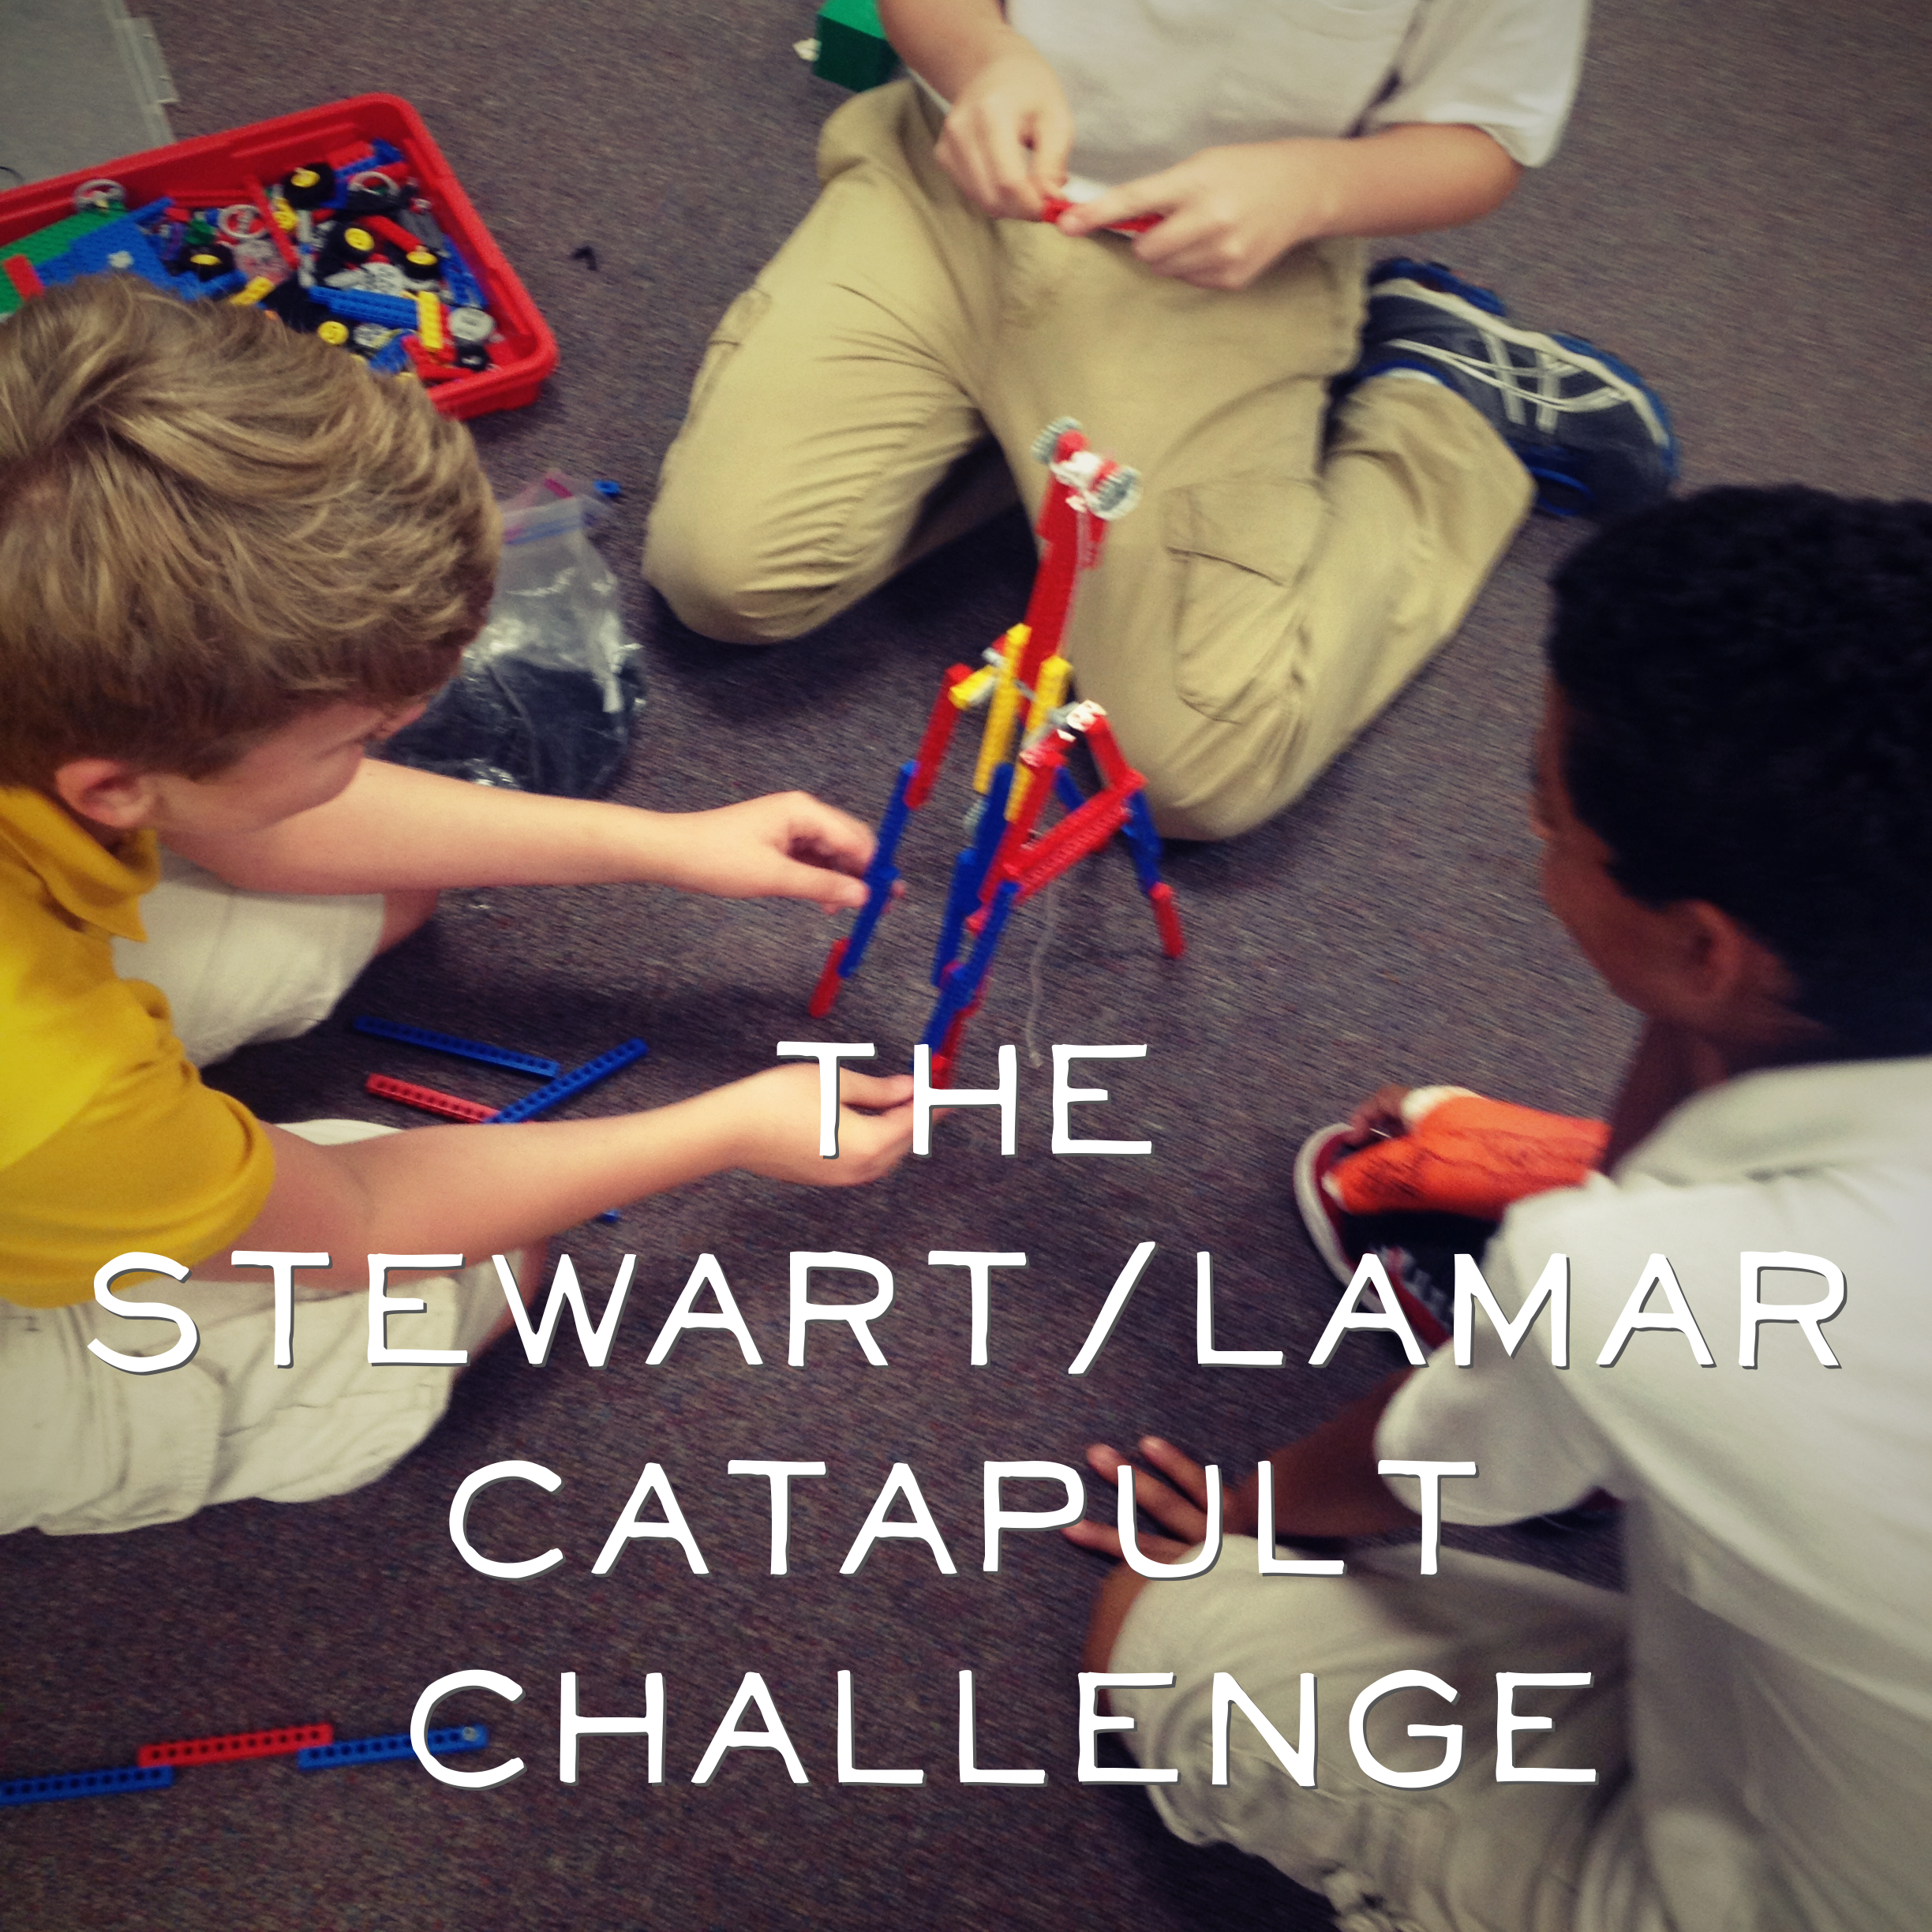 The Stewart/Lamar Catapult Challenge